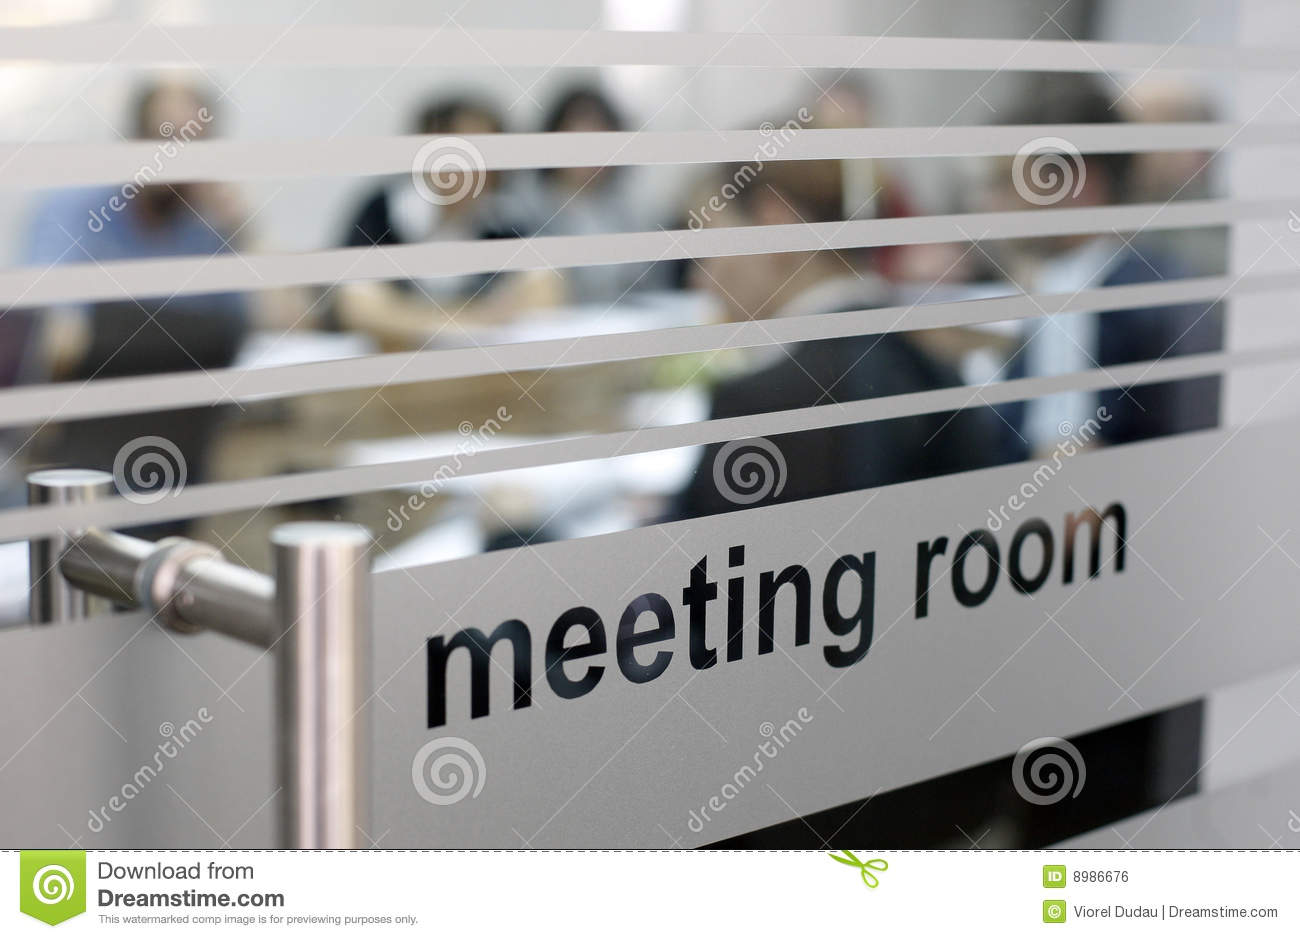 Meeting Room In Use Stock Photo Image Of Executive